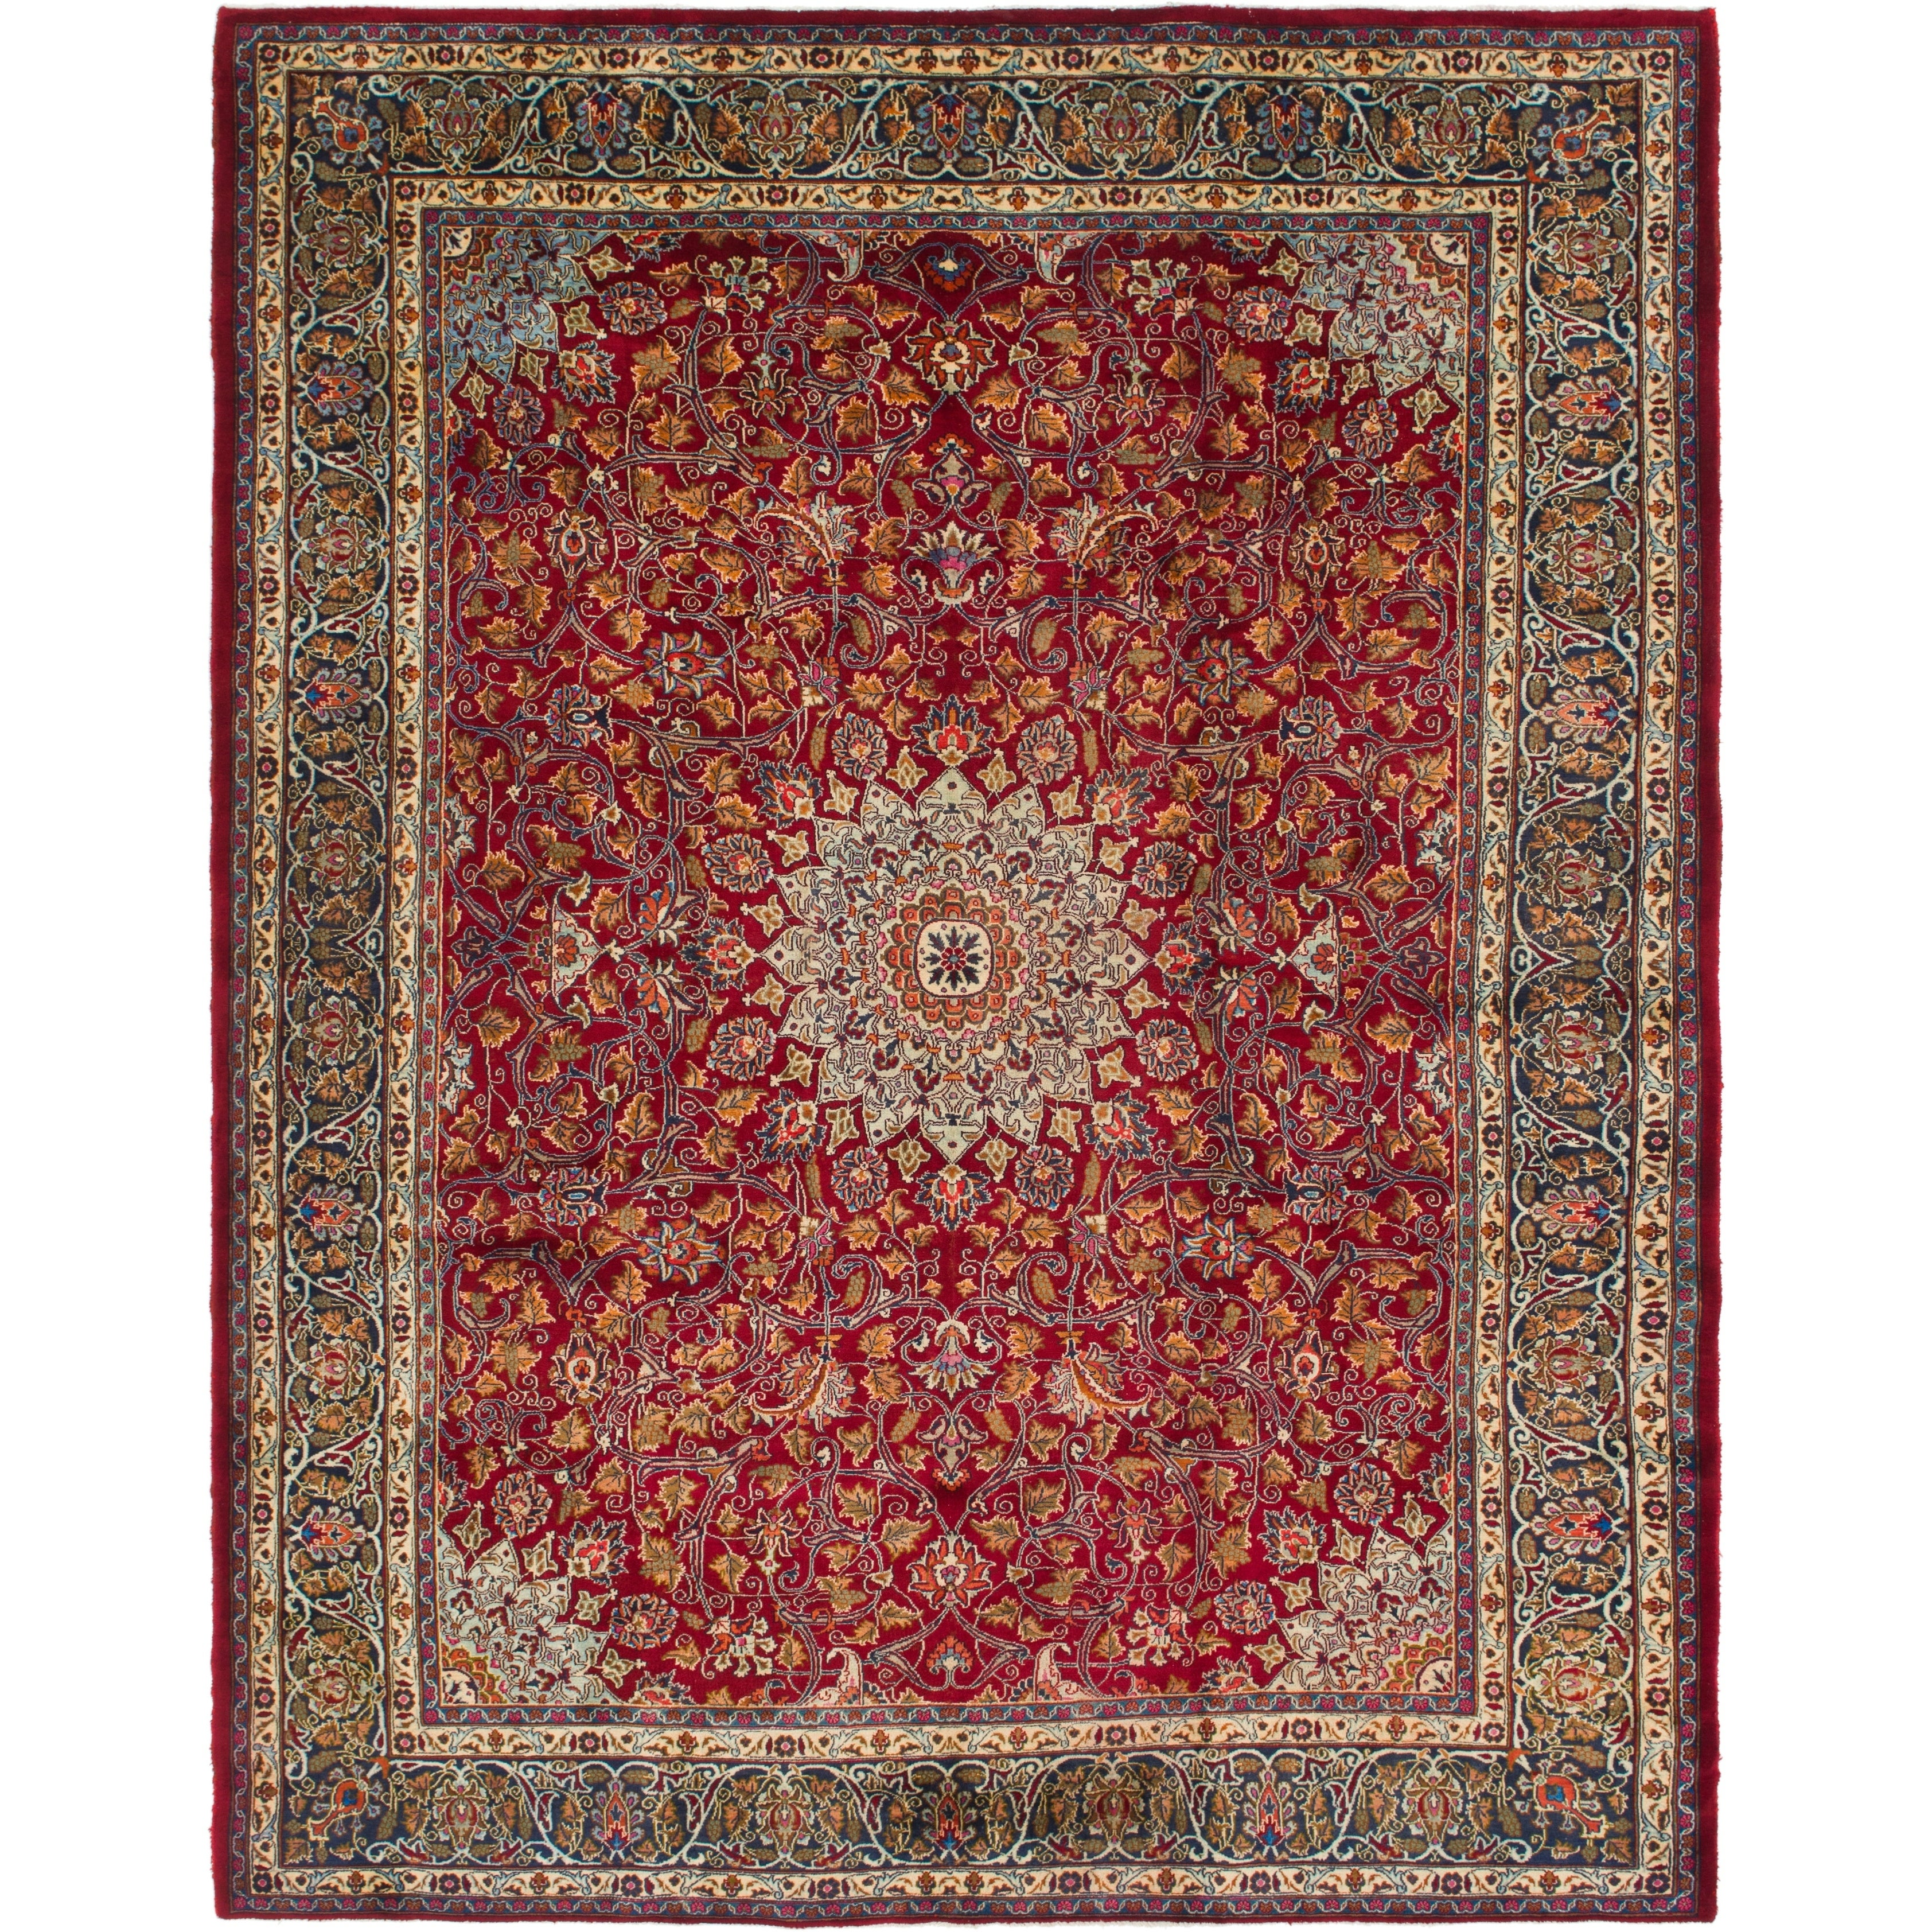 Hand Knotted Kashmar Semi Antique Wool Area Rug - 9 7 x 12 5 (Red - 9 7 x 12 5)